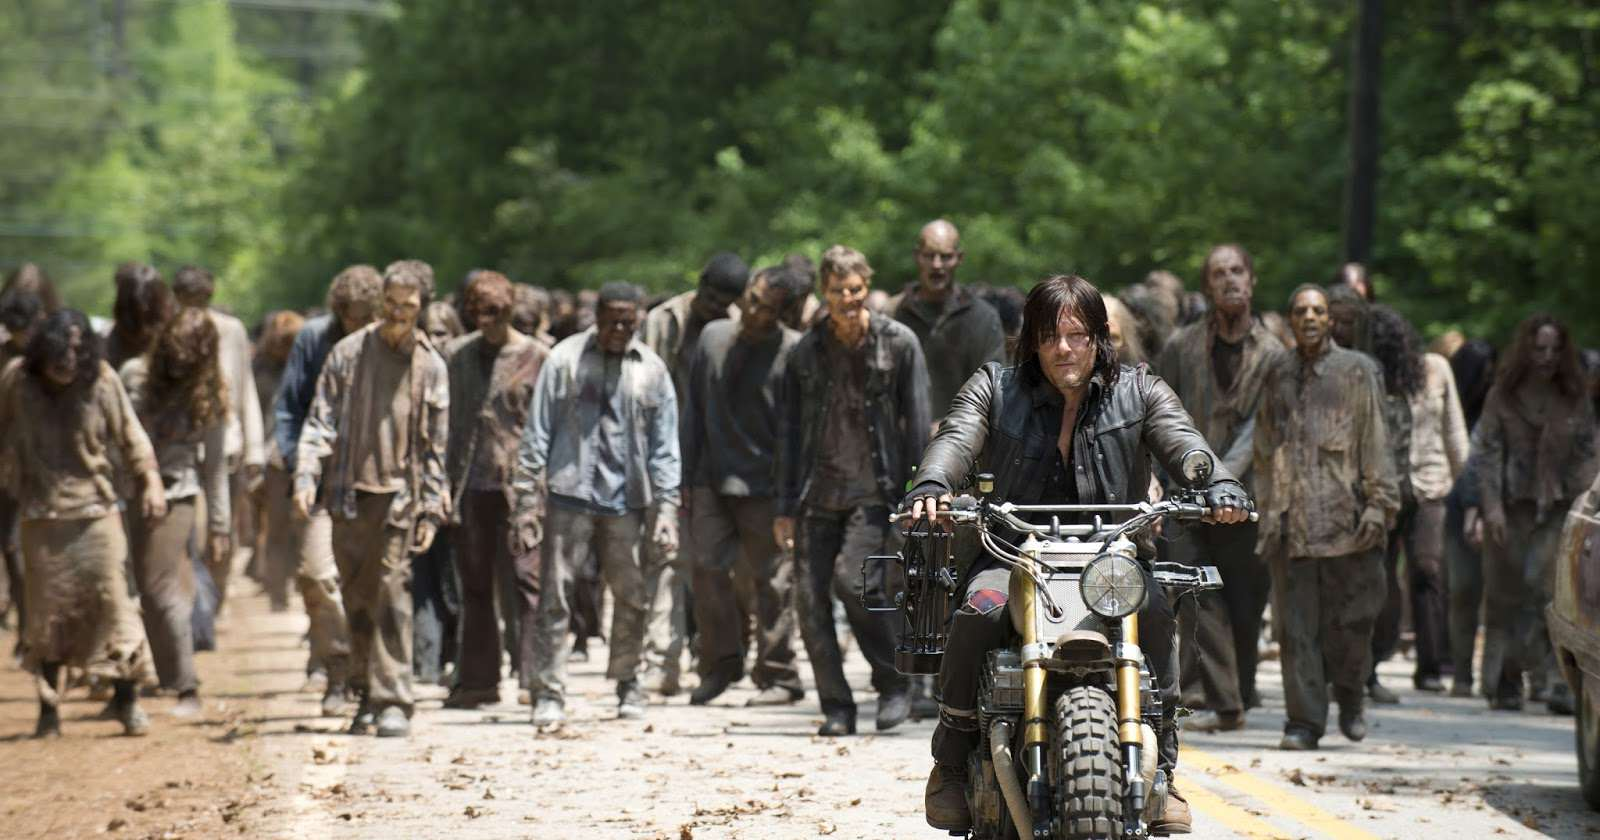 walking dead norman reedus daryl motorcycle photo Pentagon Nurses Are Training For A Zombie Apocalypse